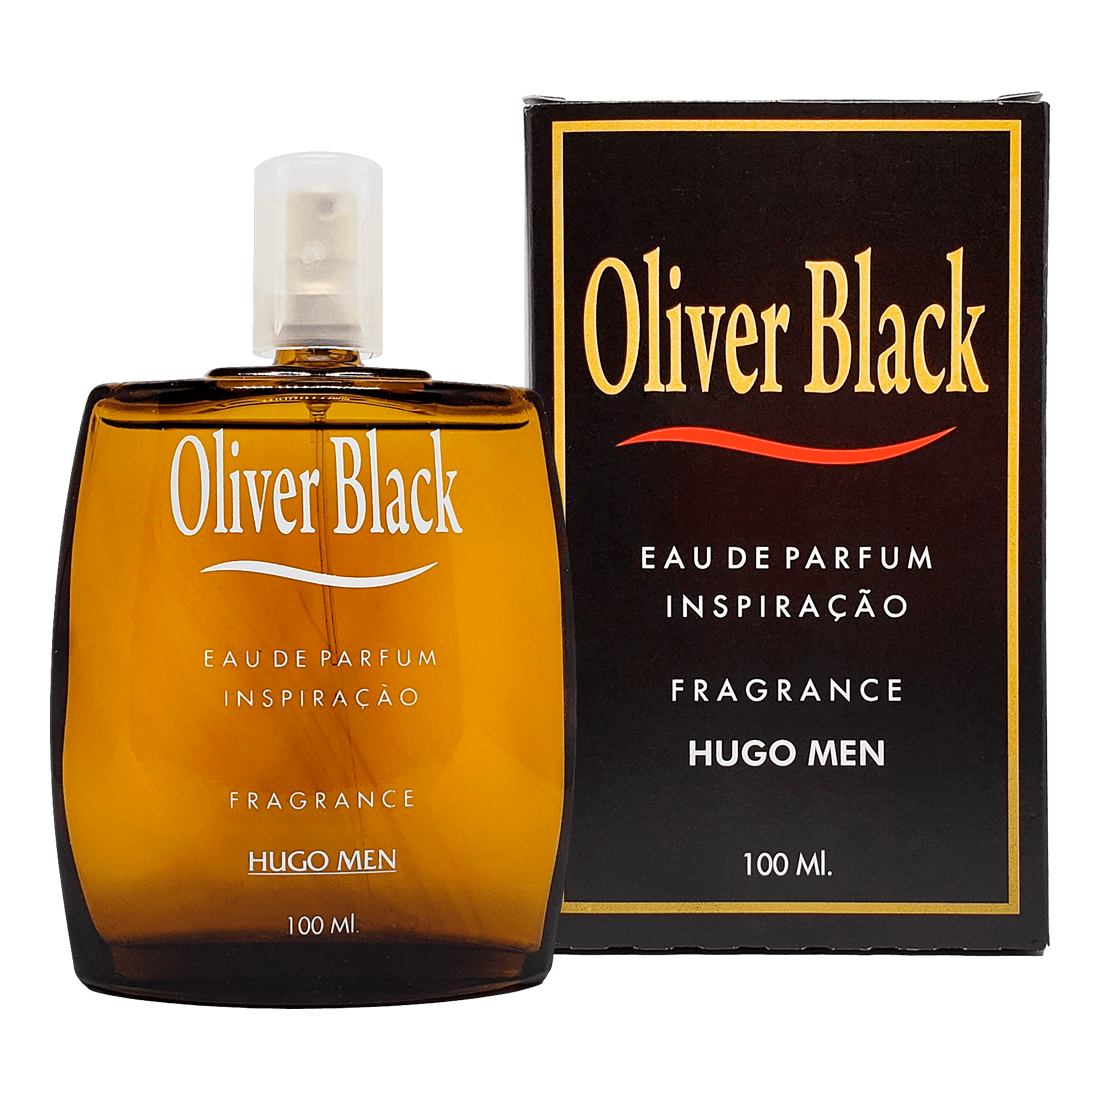 OLIVER BLACK EAU DE PARFUM FRAGRANCE HUGO MEN